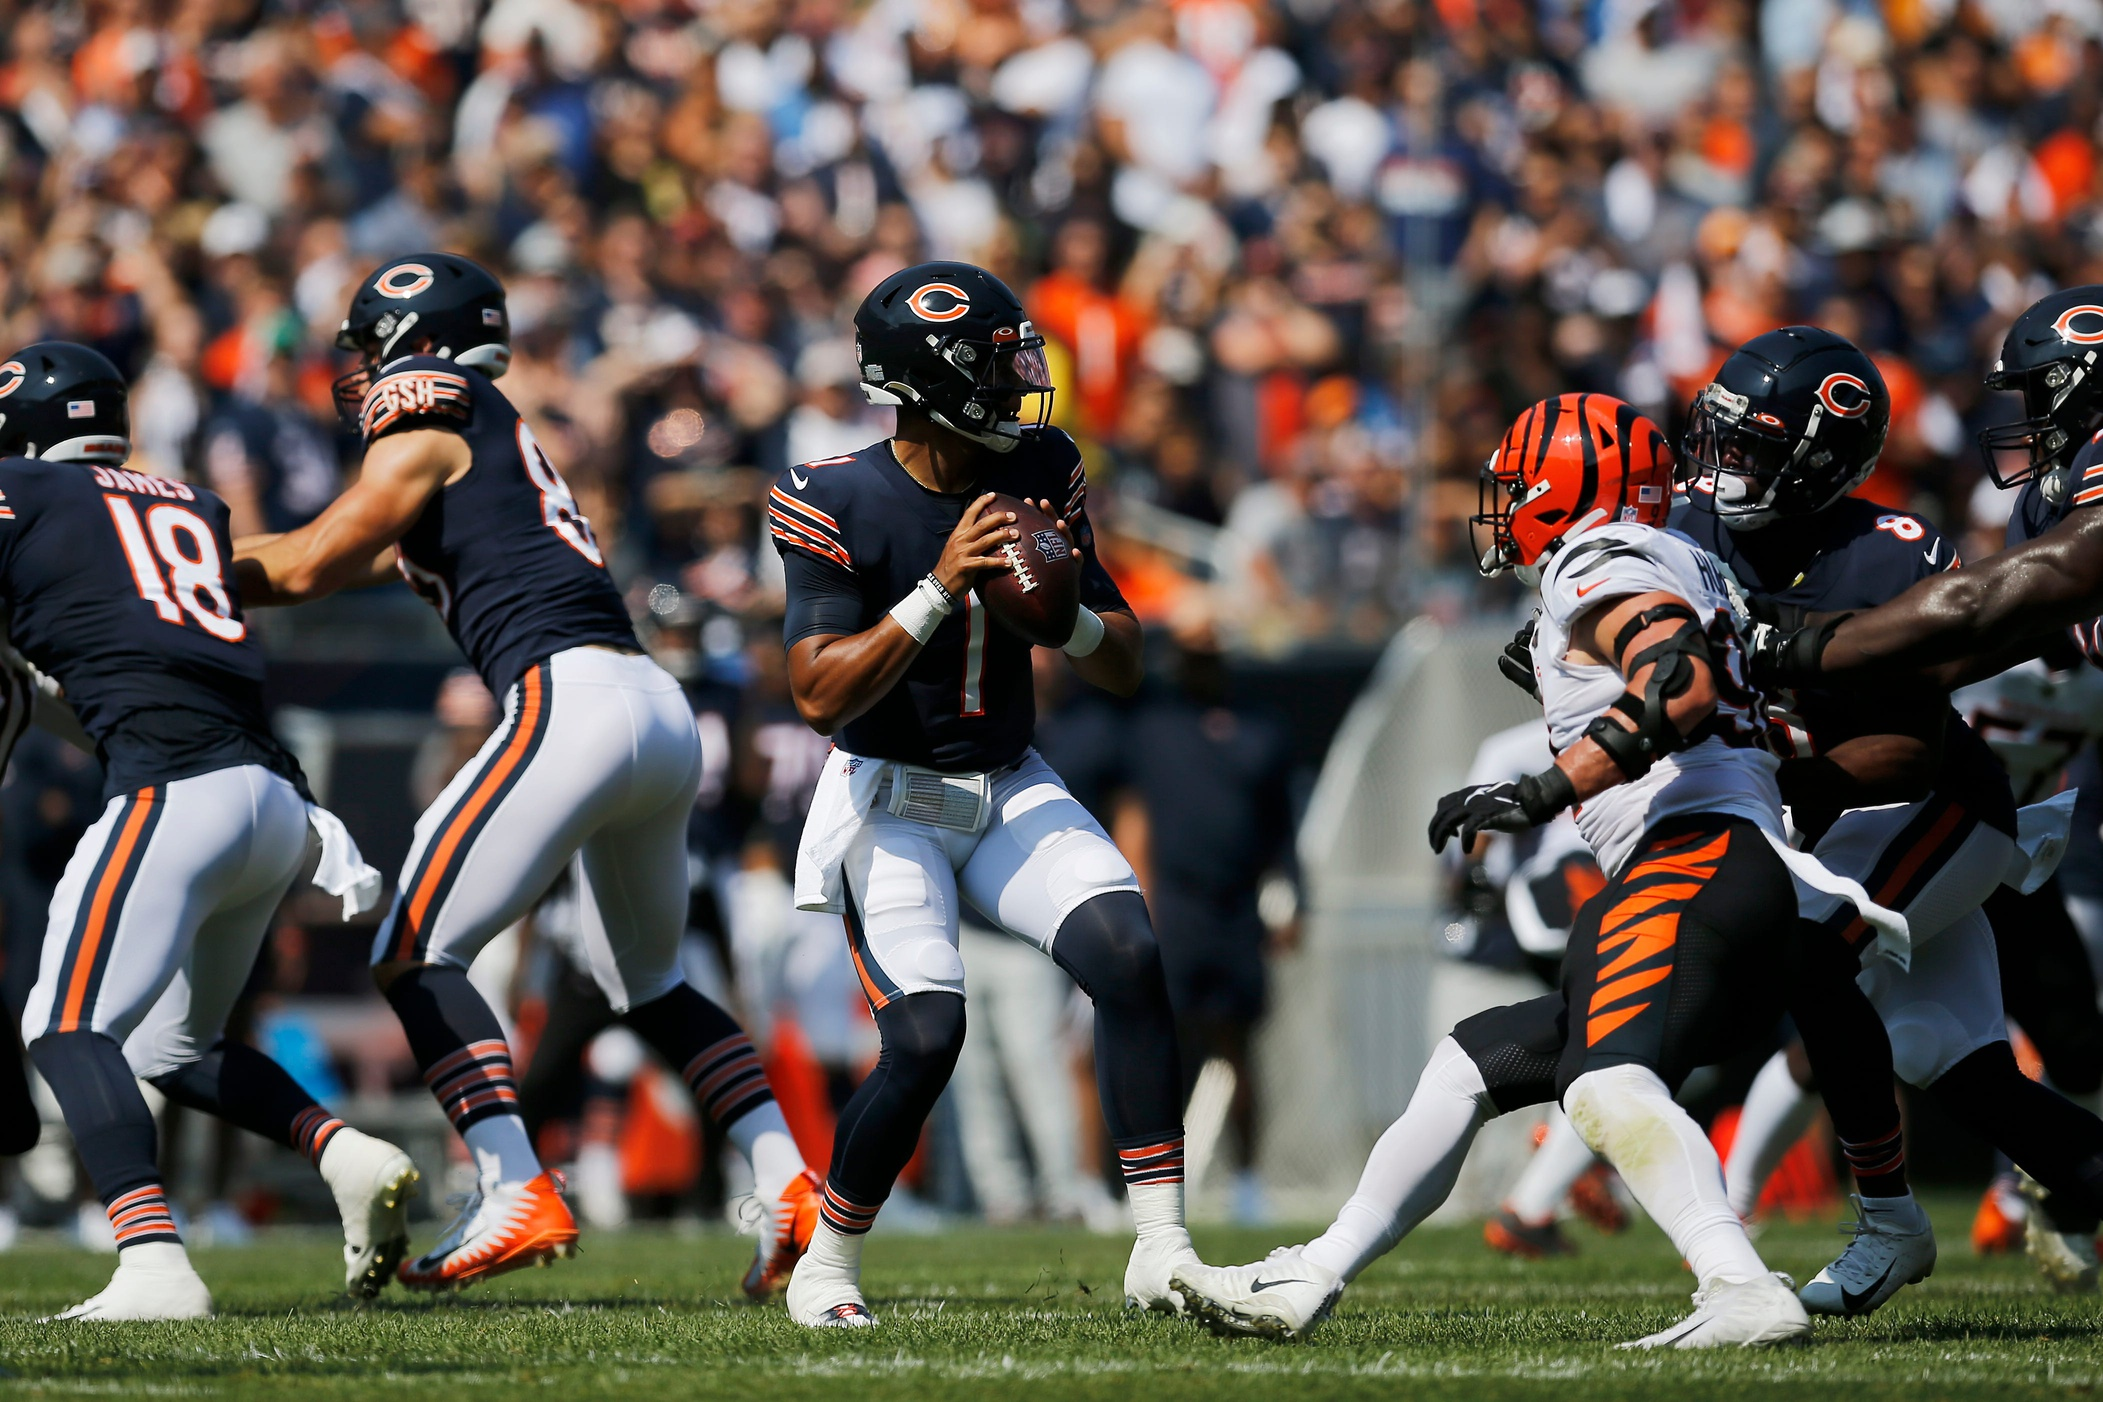 Fields replaces Dalton, leads Bears to win over Bengals